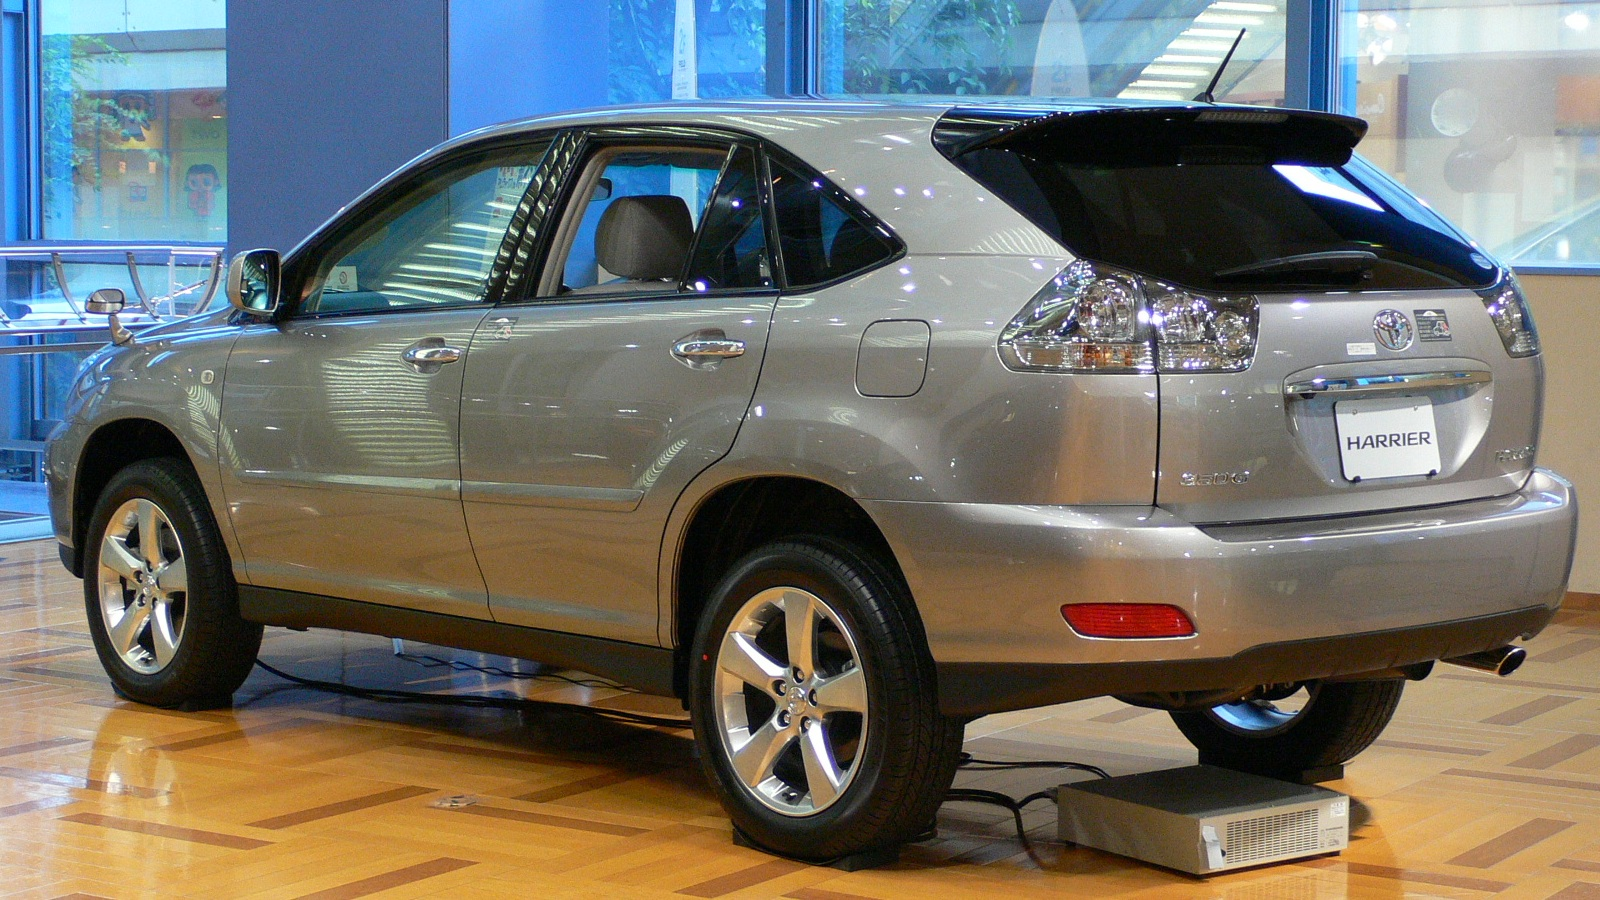 Toyota Harrier   pictures, information and specs - Auto-Database.com